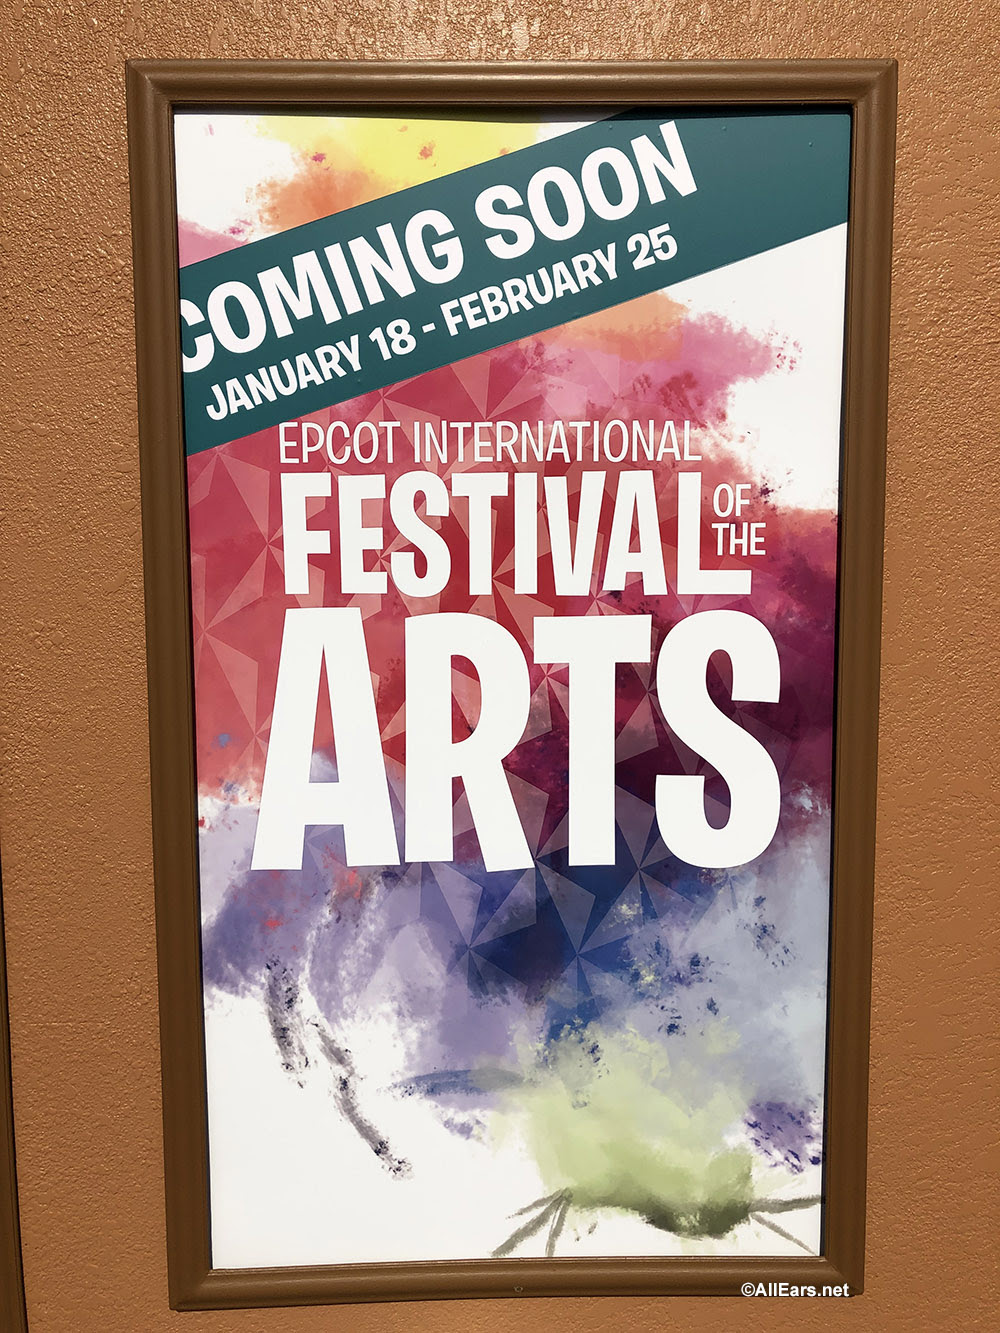 Epcot Festival Of The Arts Merchandise And Passholder Specials Announced Allears Net